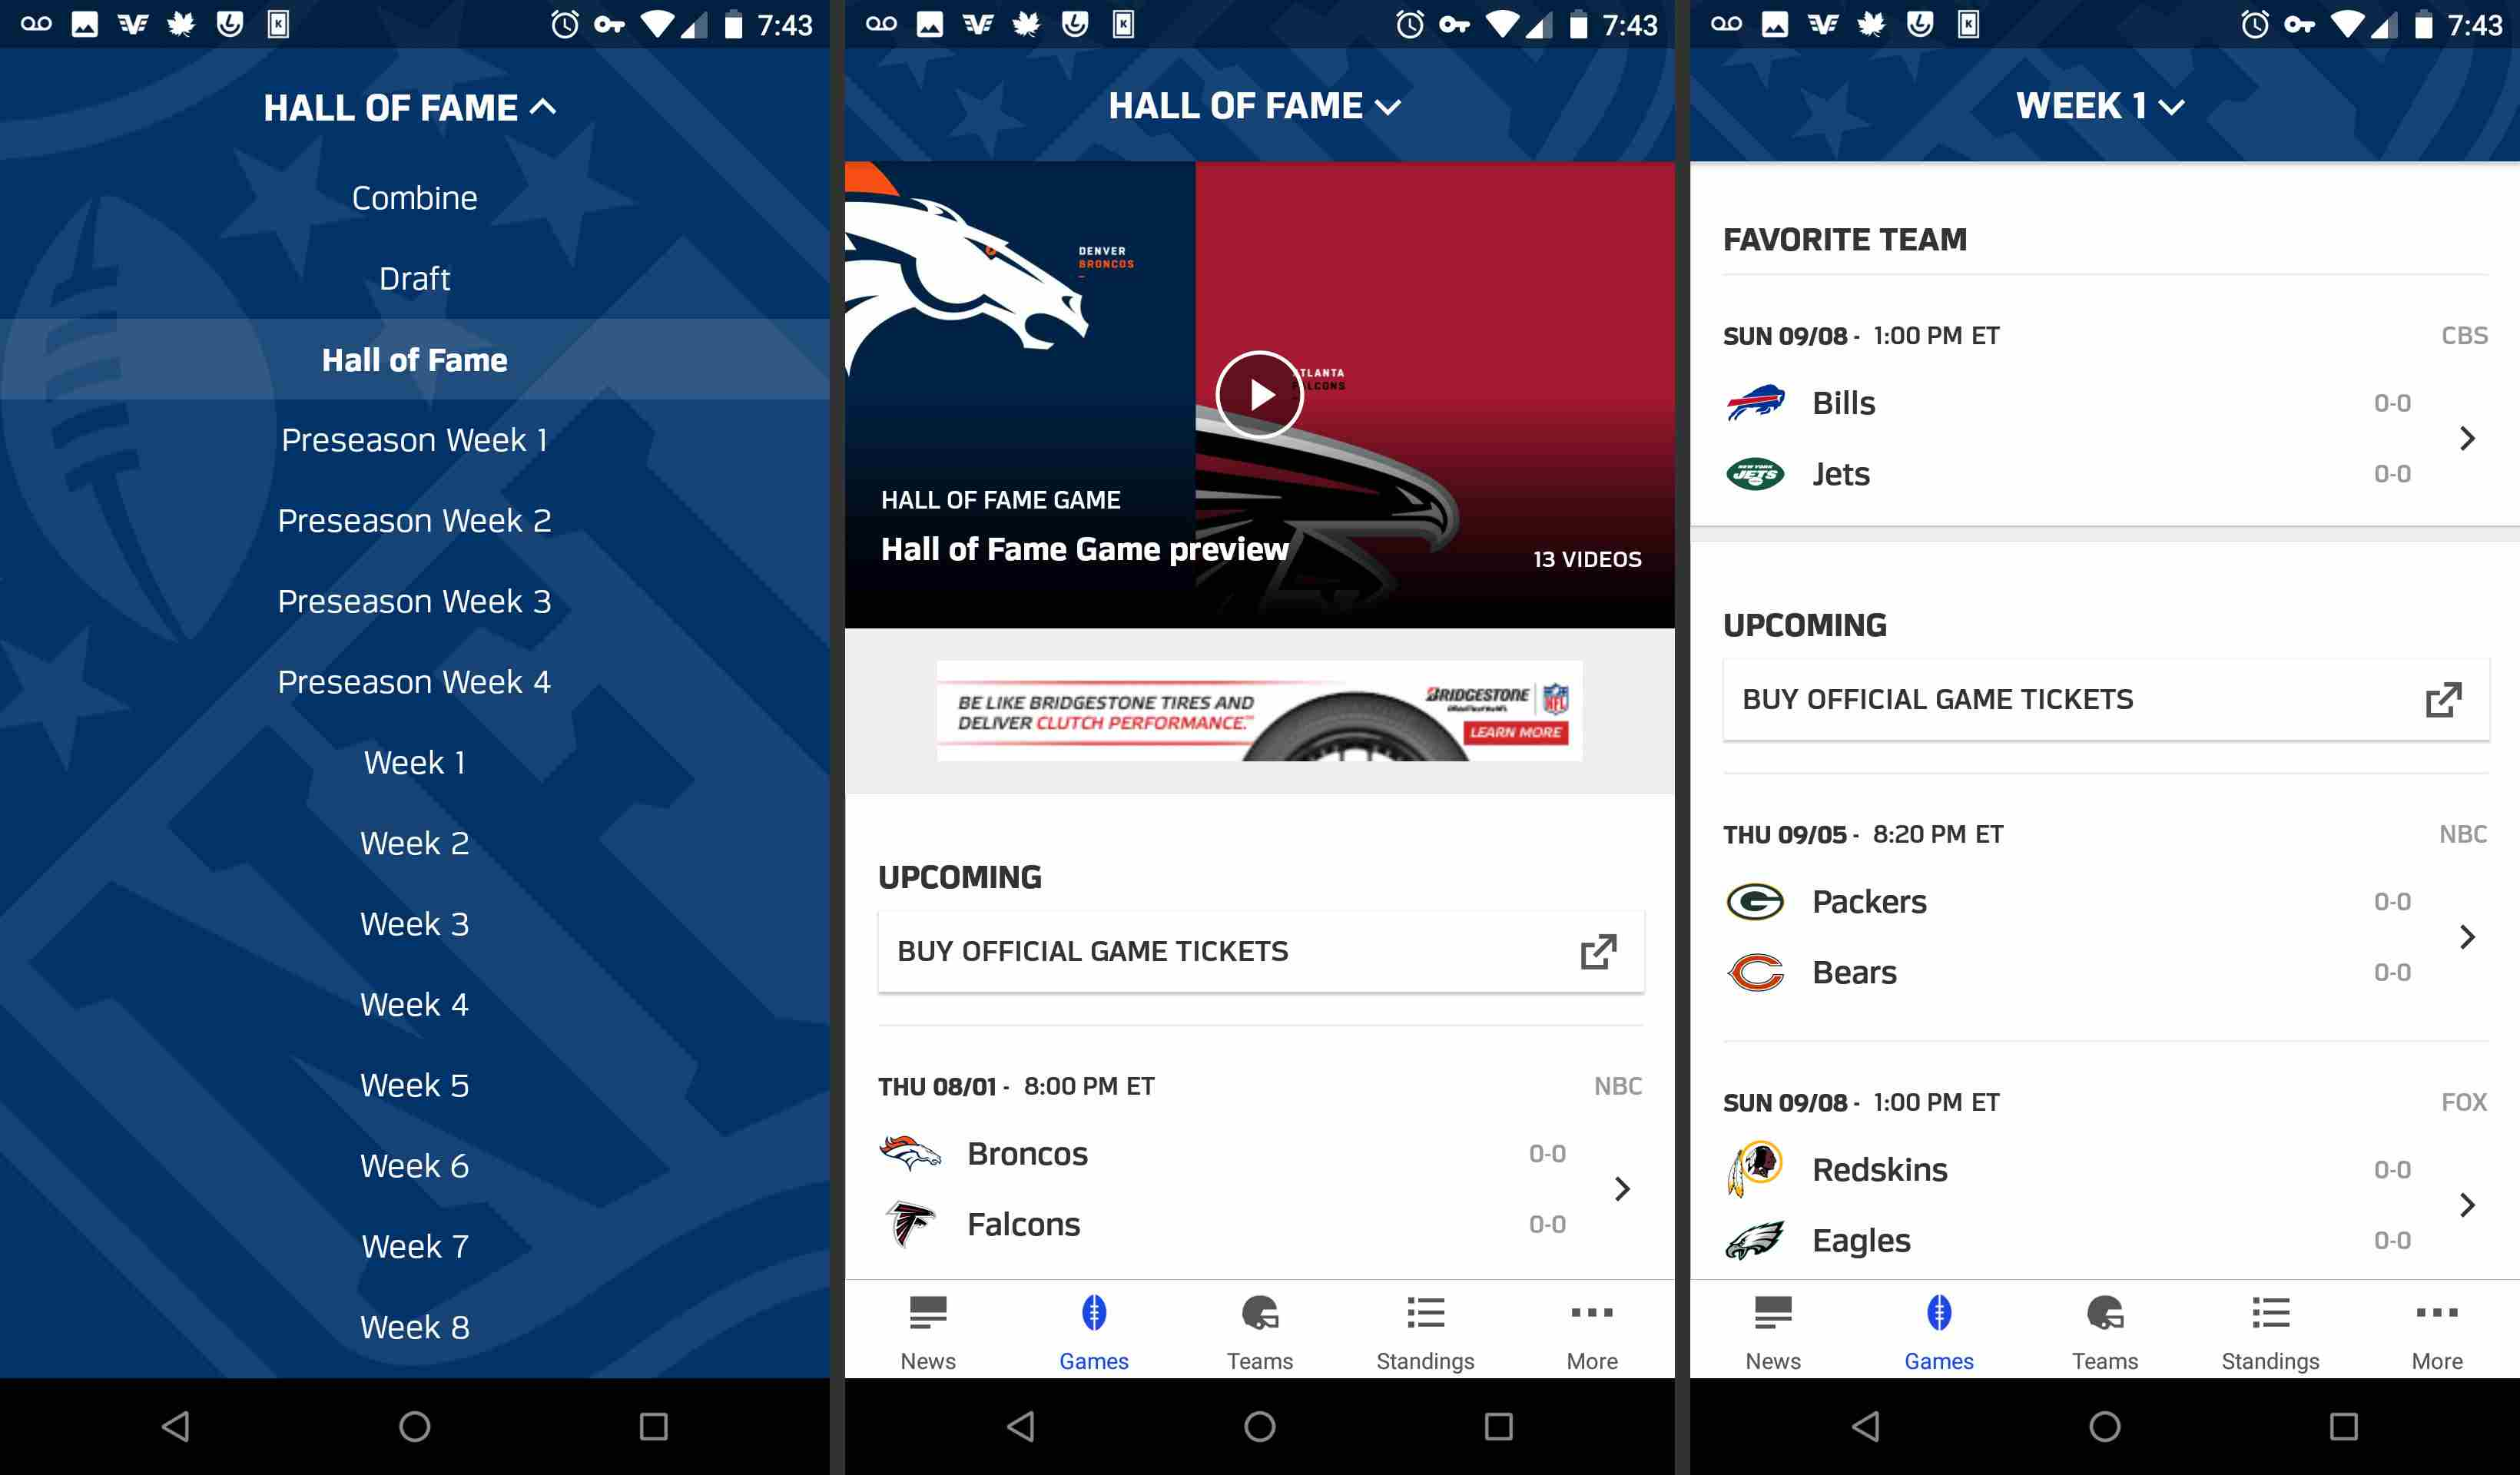 NFL mobile app games and schedule